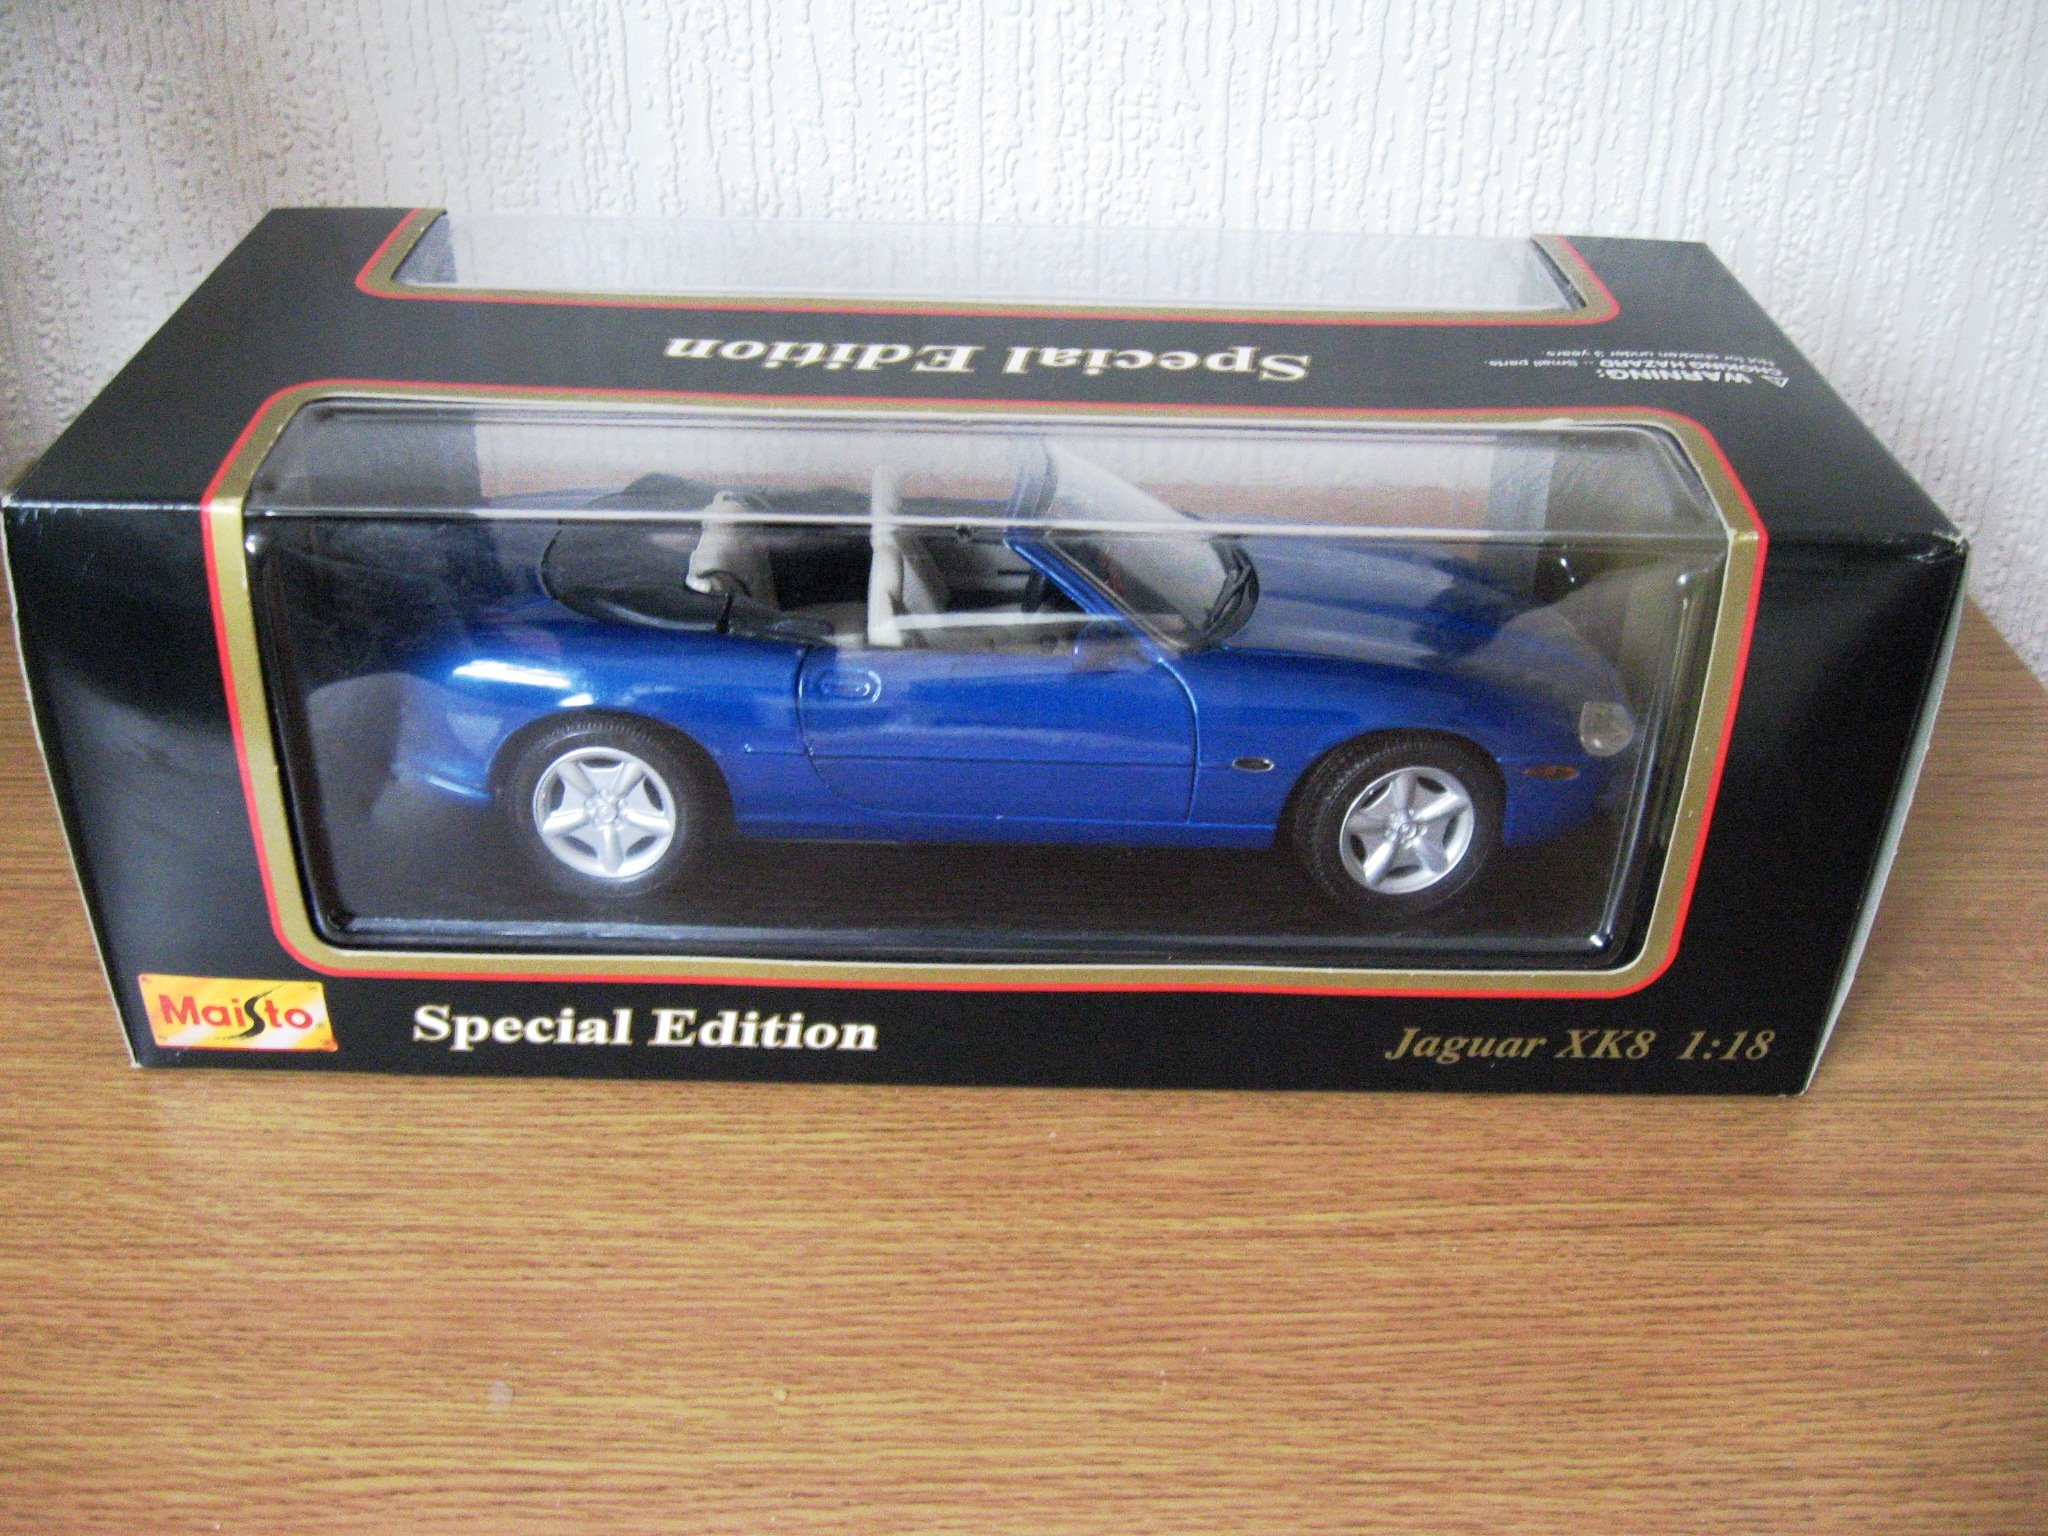 1996 Jaguar XK8 - Special Edition Die Cast Model by Maisto (Image #1)